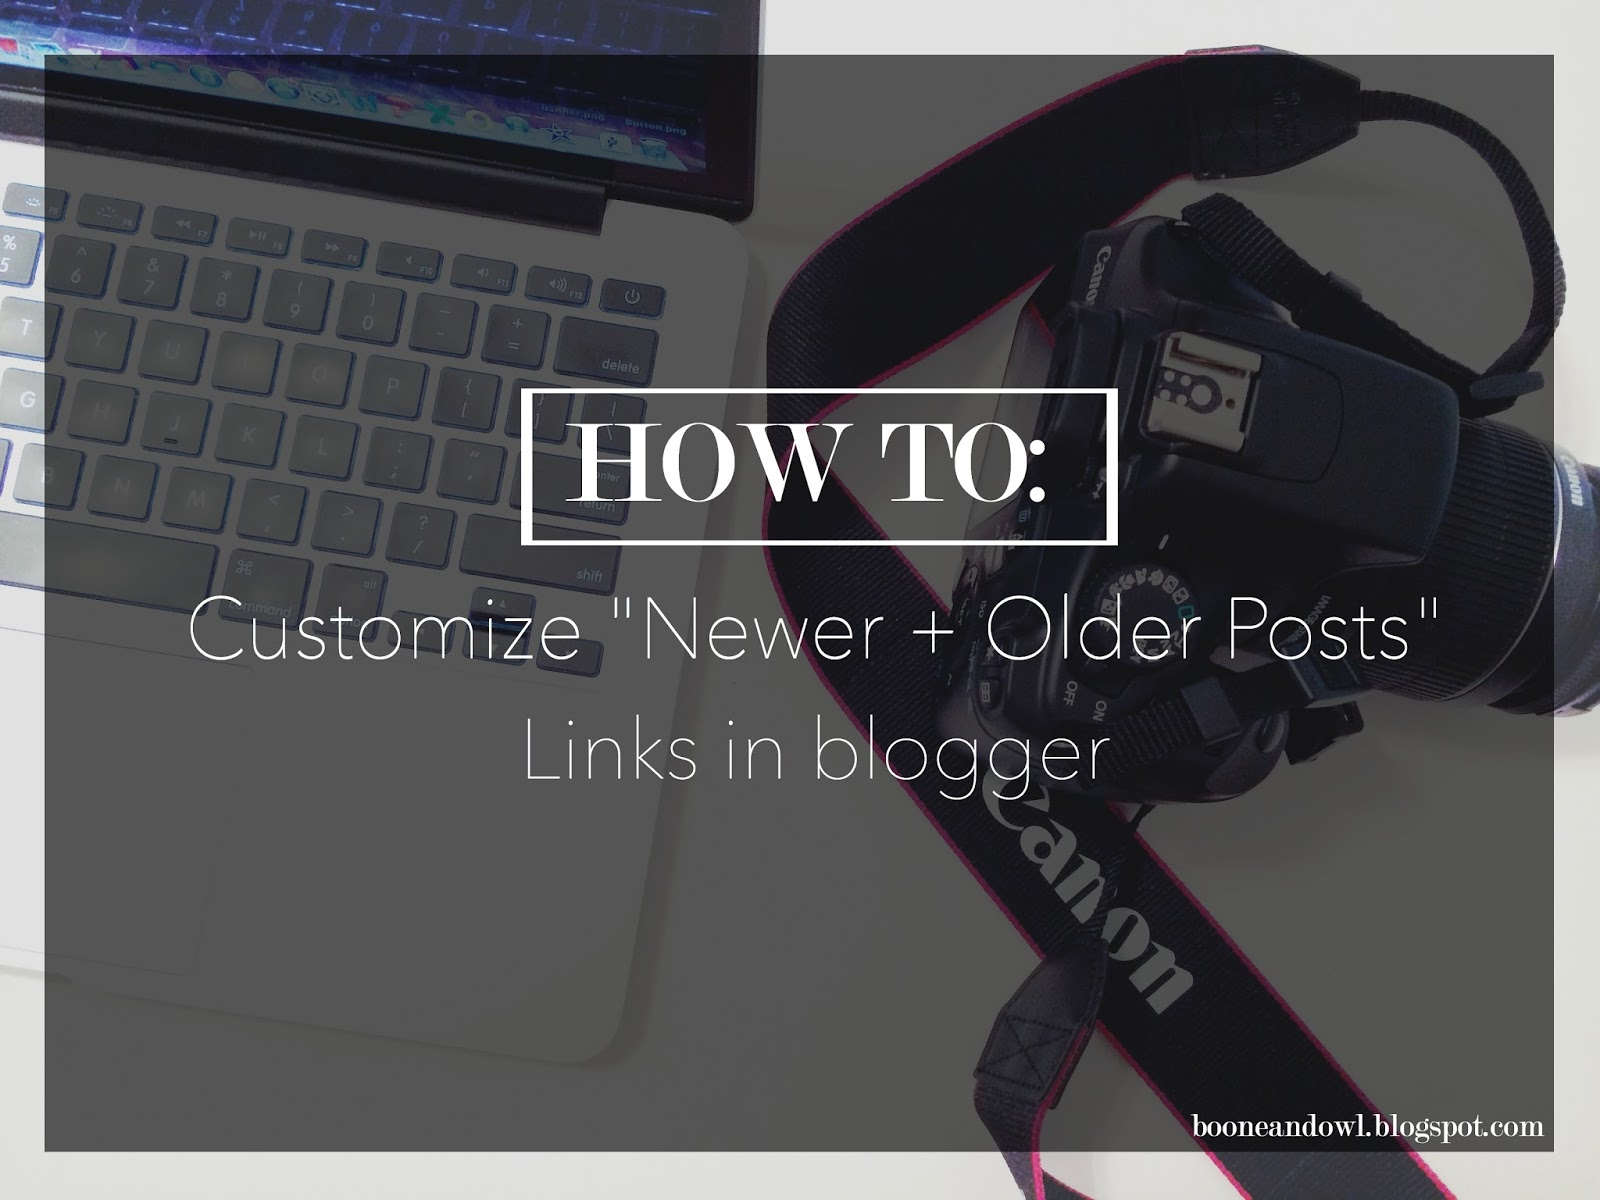 How To: Customize the Newer + Older Posts Links in Blogger, blog tutorials, coding tutorial, customize blogger, blog design